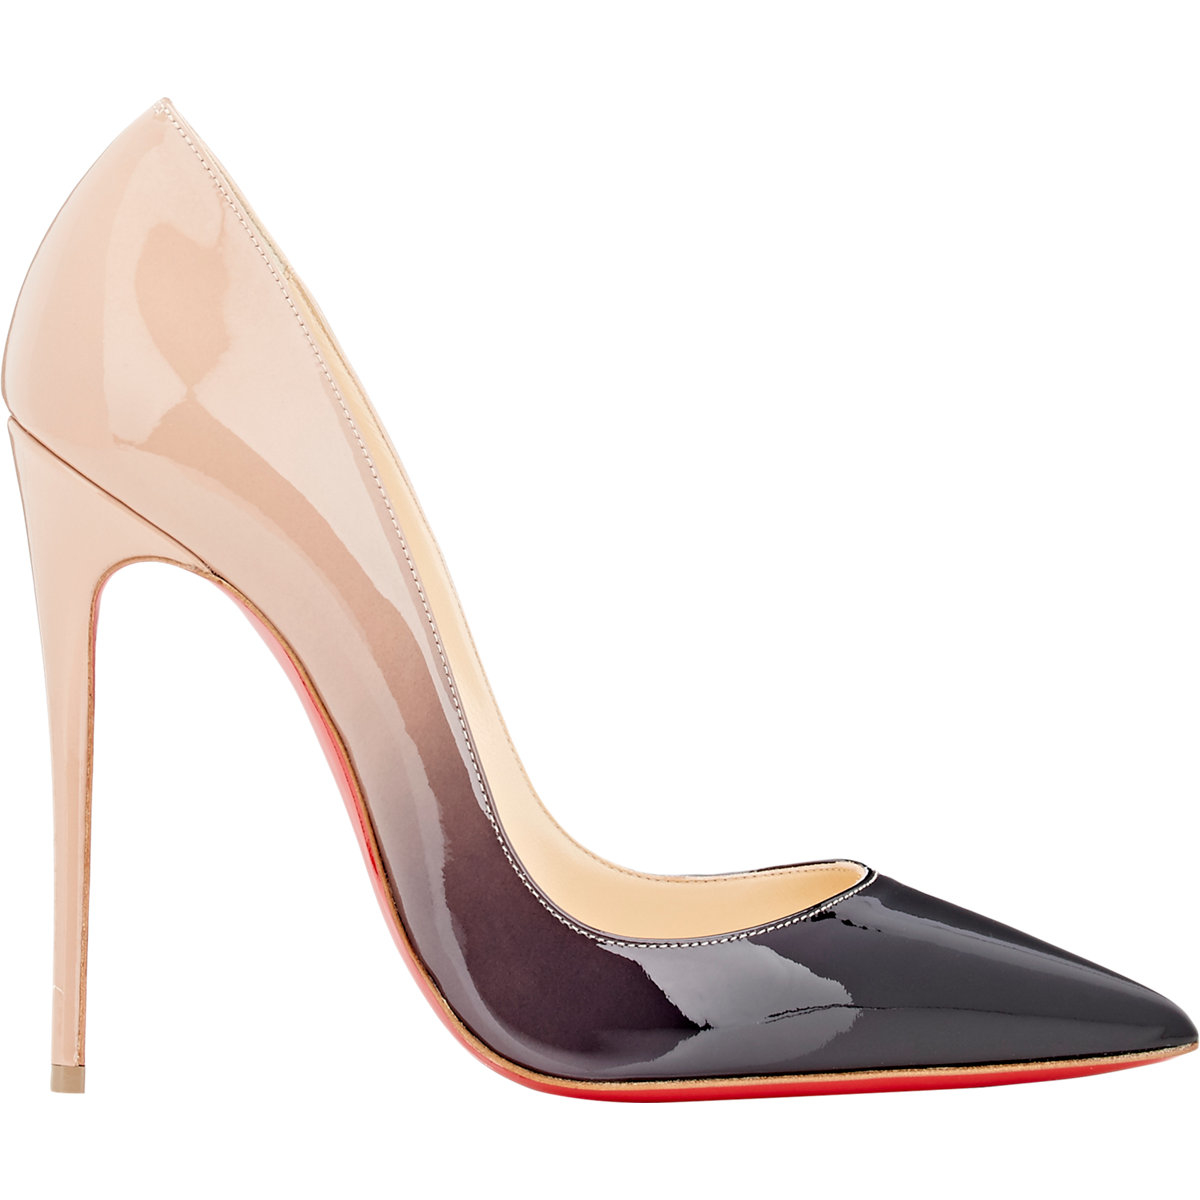 christian louboutin so kate ombr patent leather pumps in. Black Bedroom Furniture Sets. Home Design Ideas